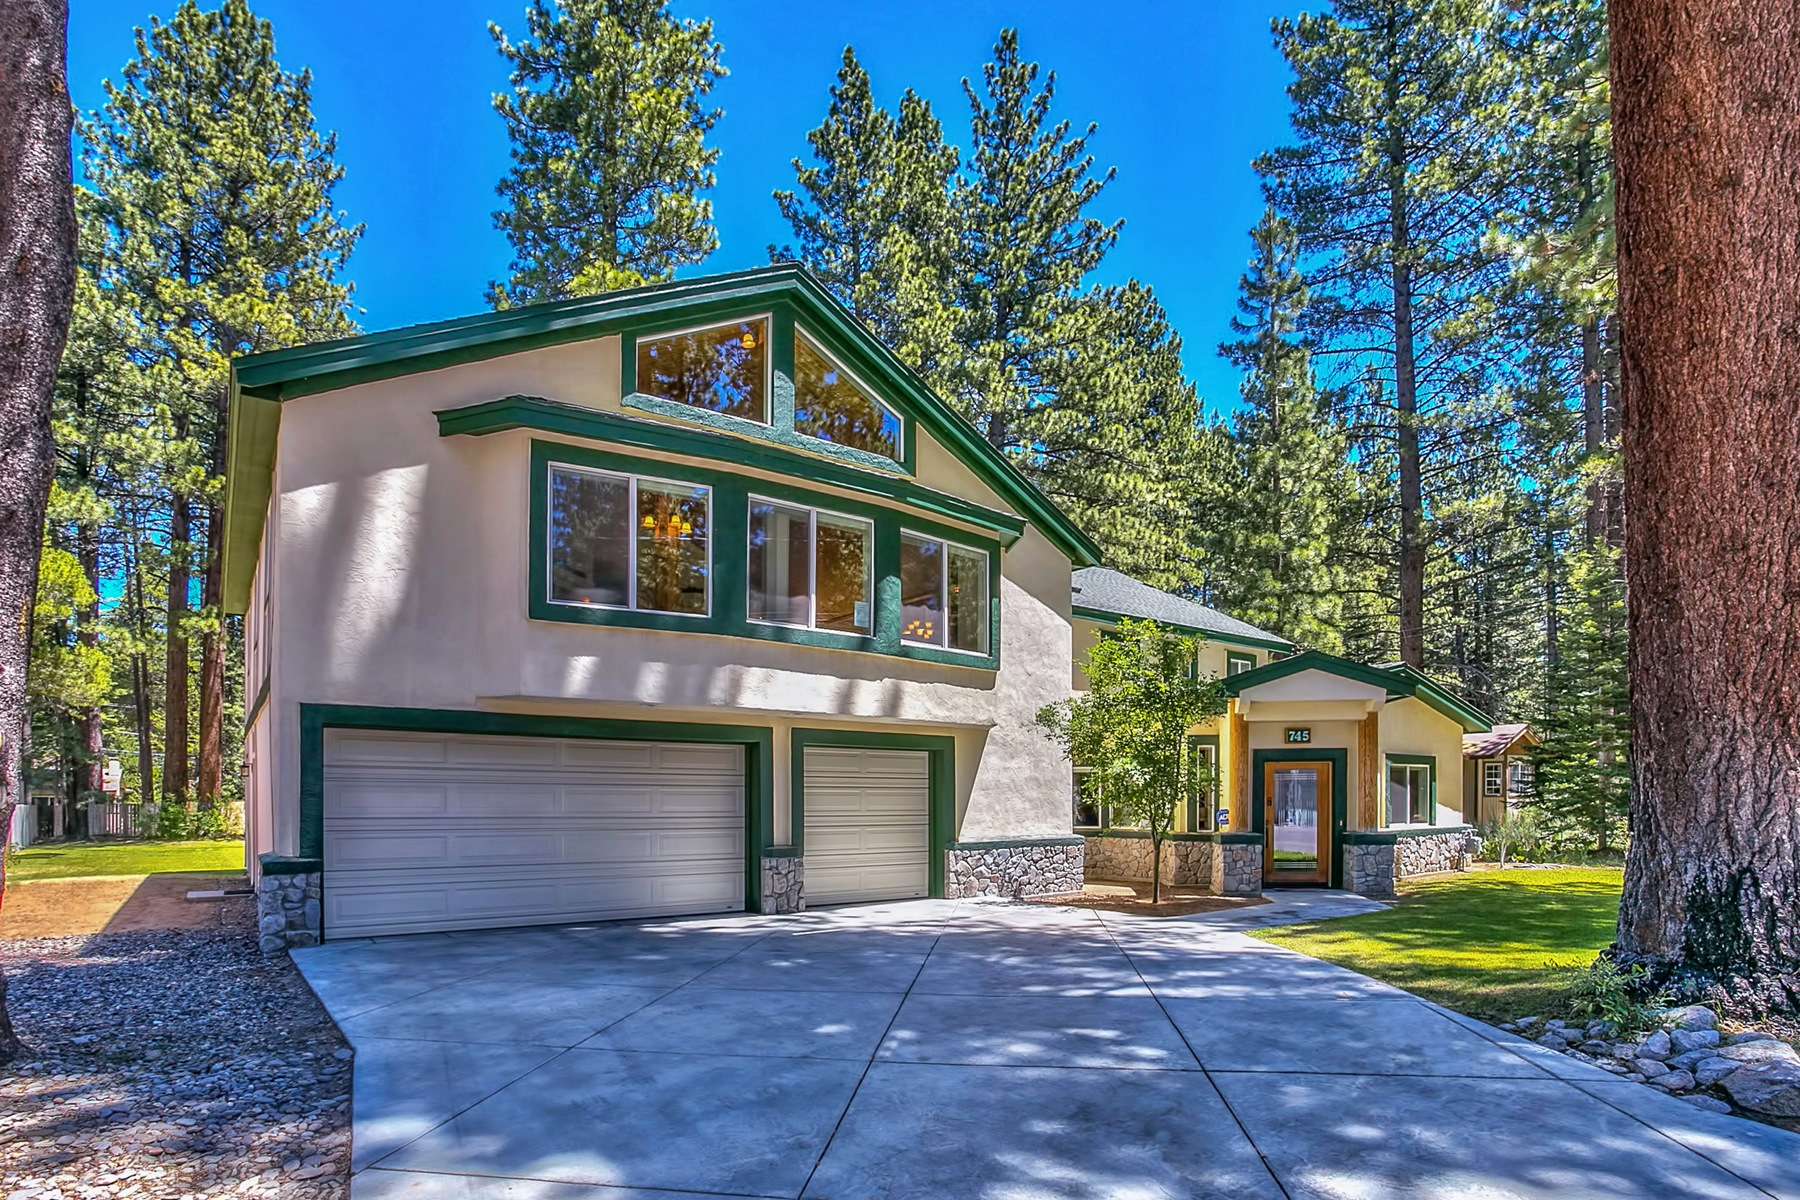 Single Family Home for Active at 745 Eloise Avenue South Lake Tahoe, California 96150 United States